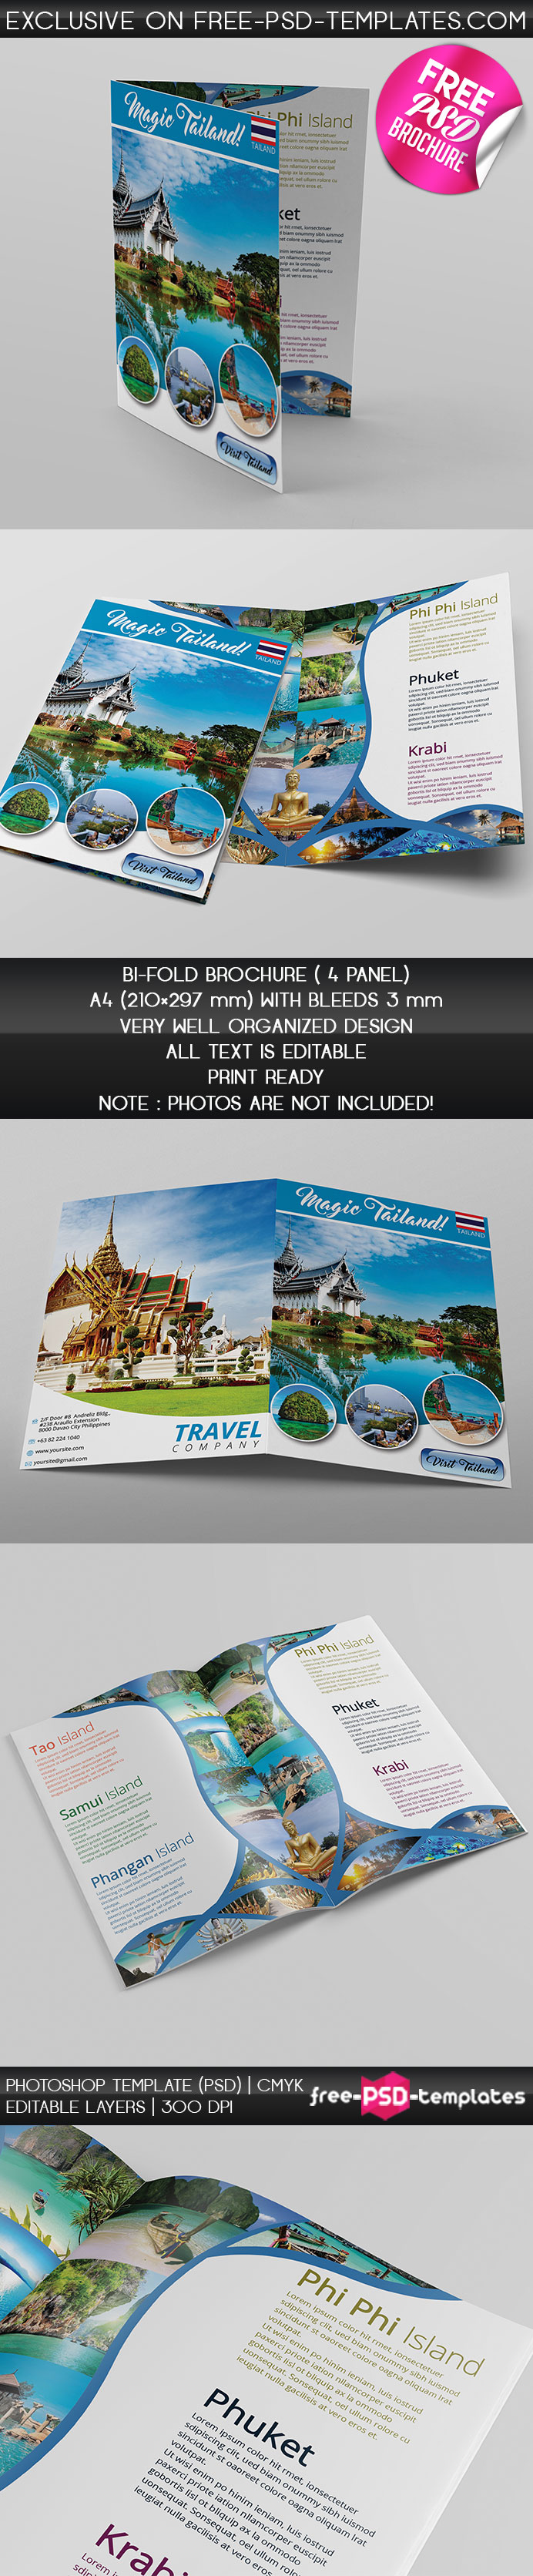 Touristic bi fold brochure free psd brochure template for Free psd brochure templates